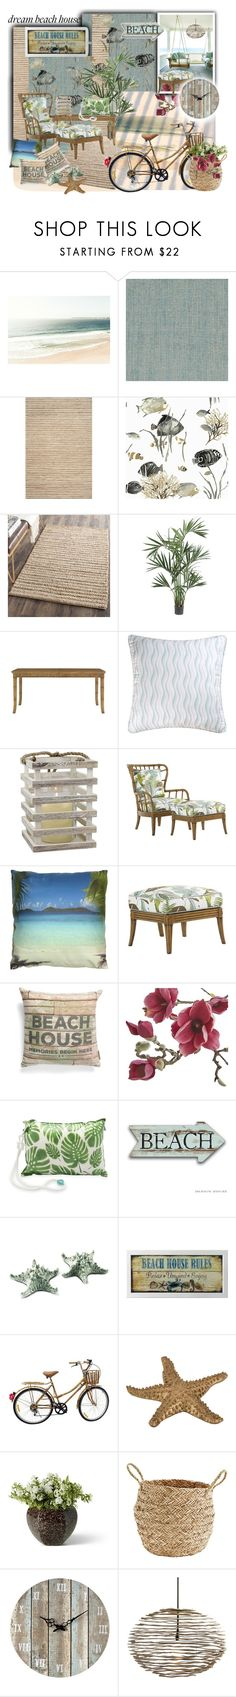 """Soñada Casa de Playa"" by silviaracchi ❤ liked on Polyvore featuring interior, interiors, interior design, home, home decor, interior decorating, DutchCrafters, Safavieh, Nearly Natural and Tommy Bahama"